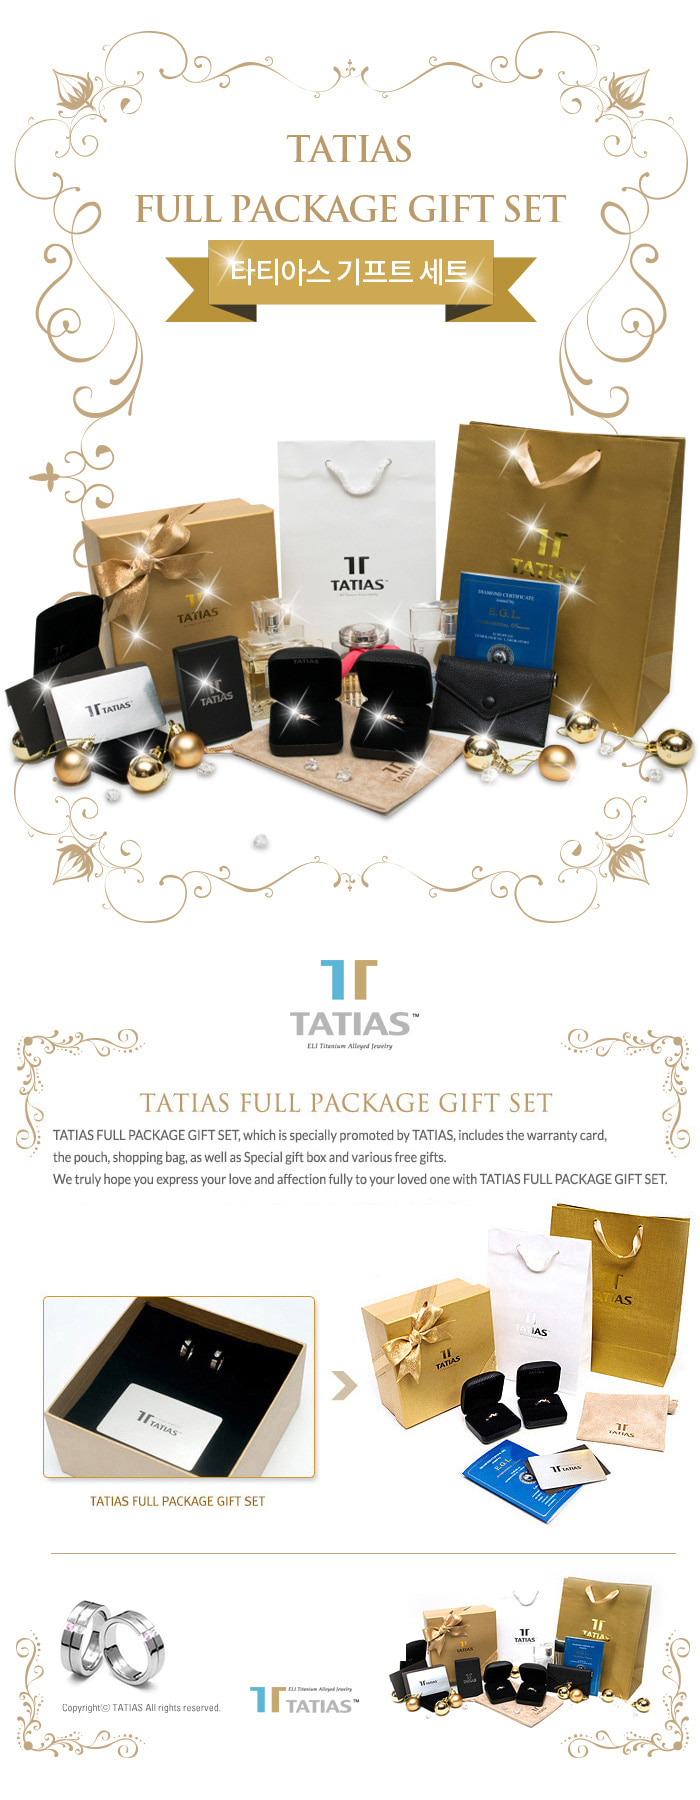 FULL PACKAGE GIFT SET, which is promoted by TATIAS, includes the warranty card, the pouch, shopping bag, as well as special gift box and free gifts.